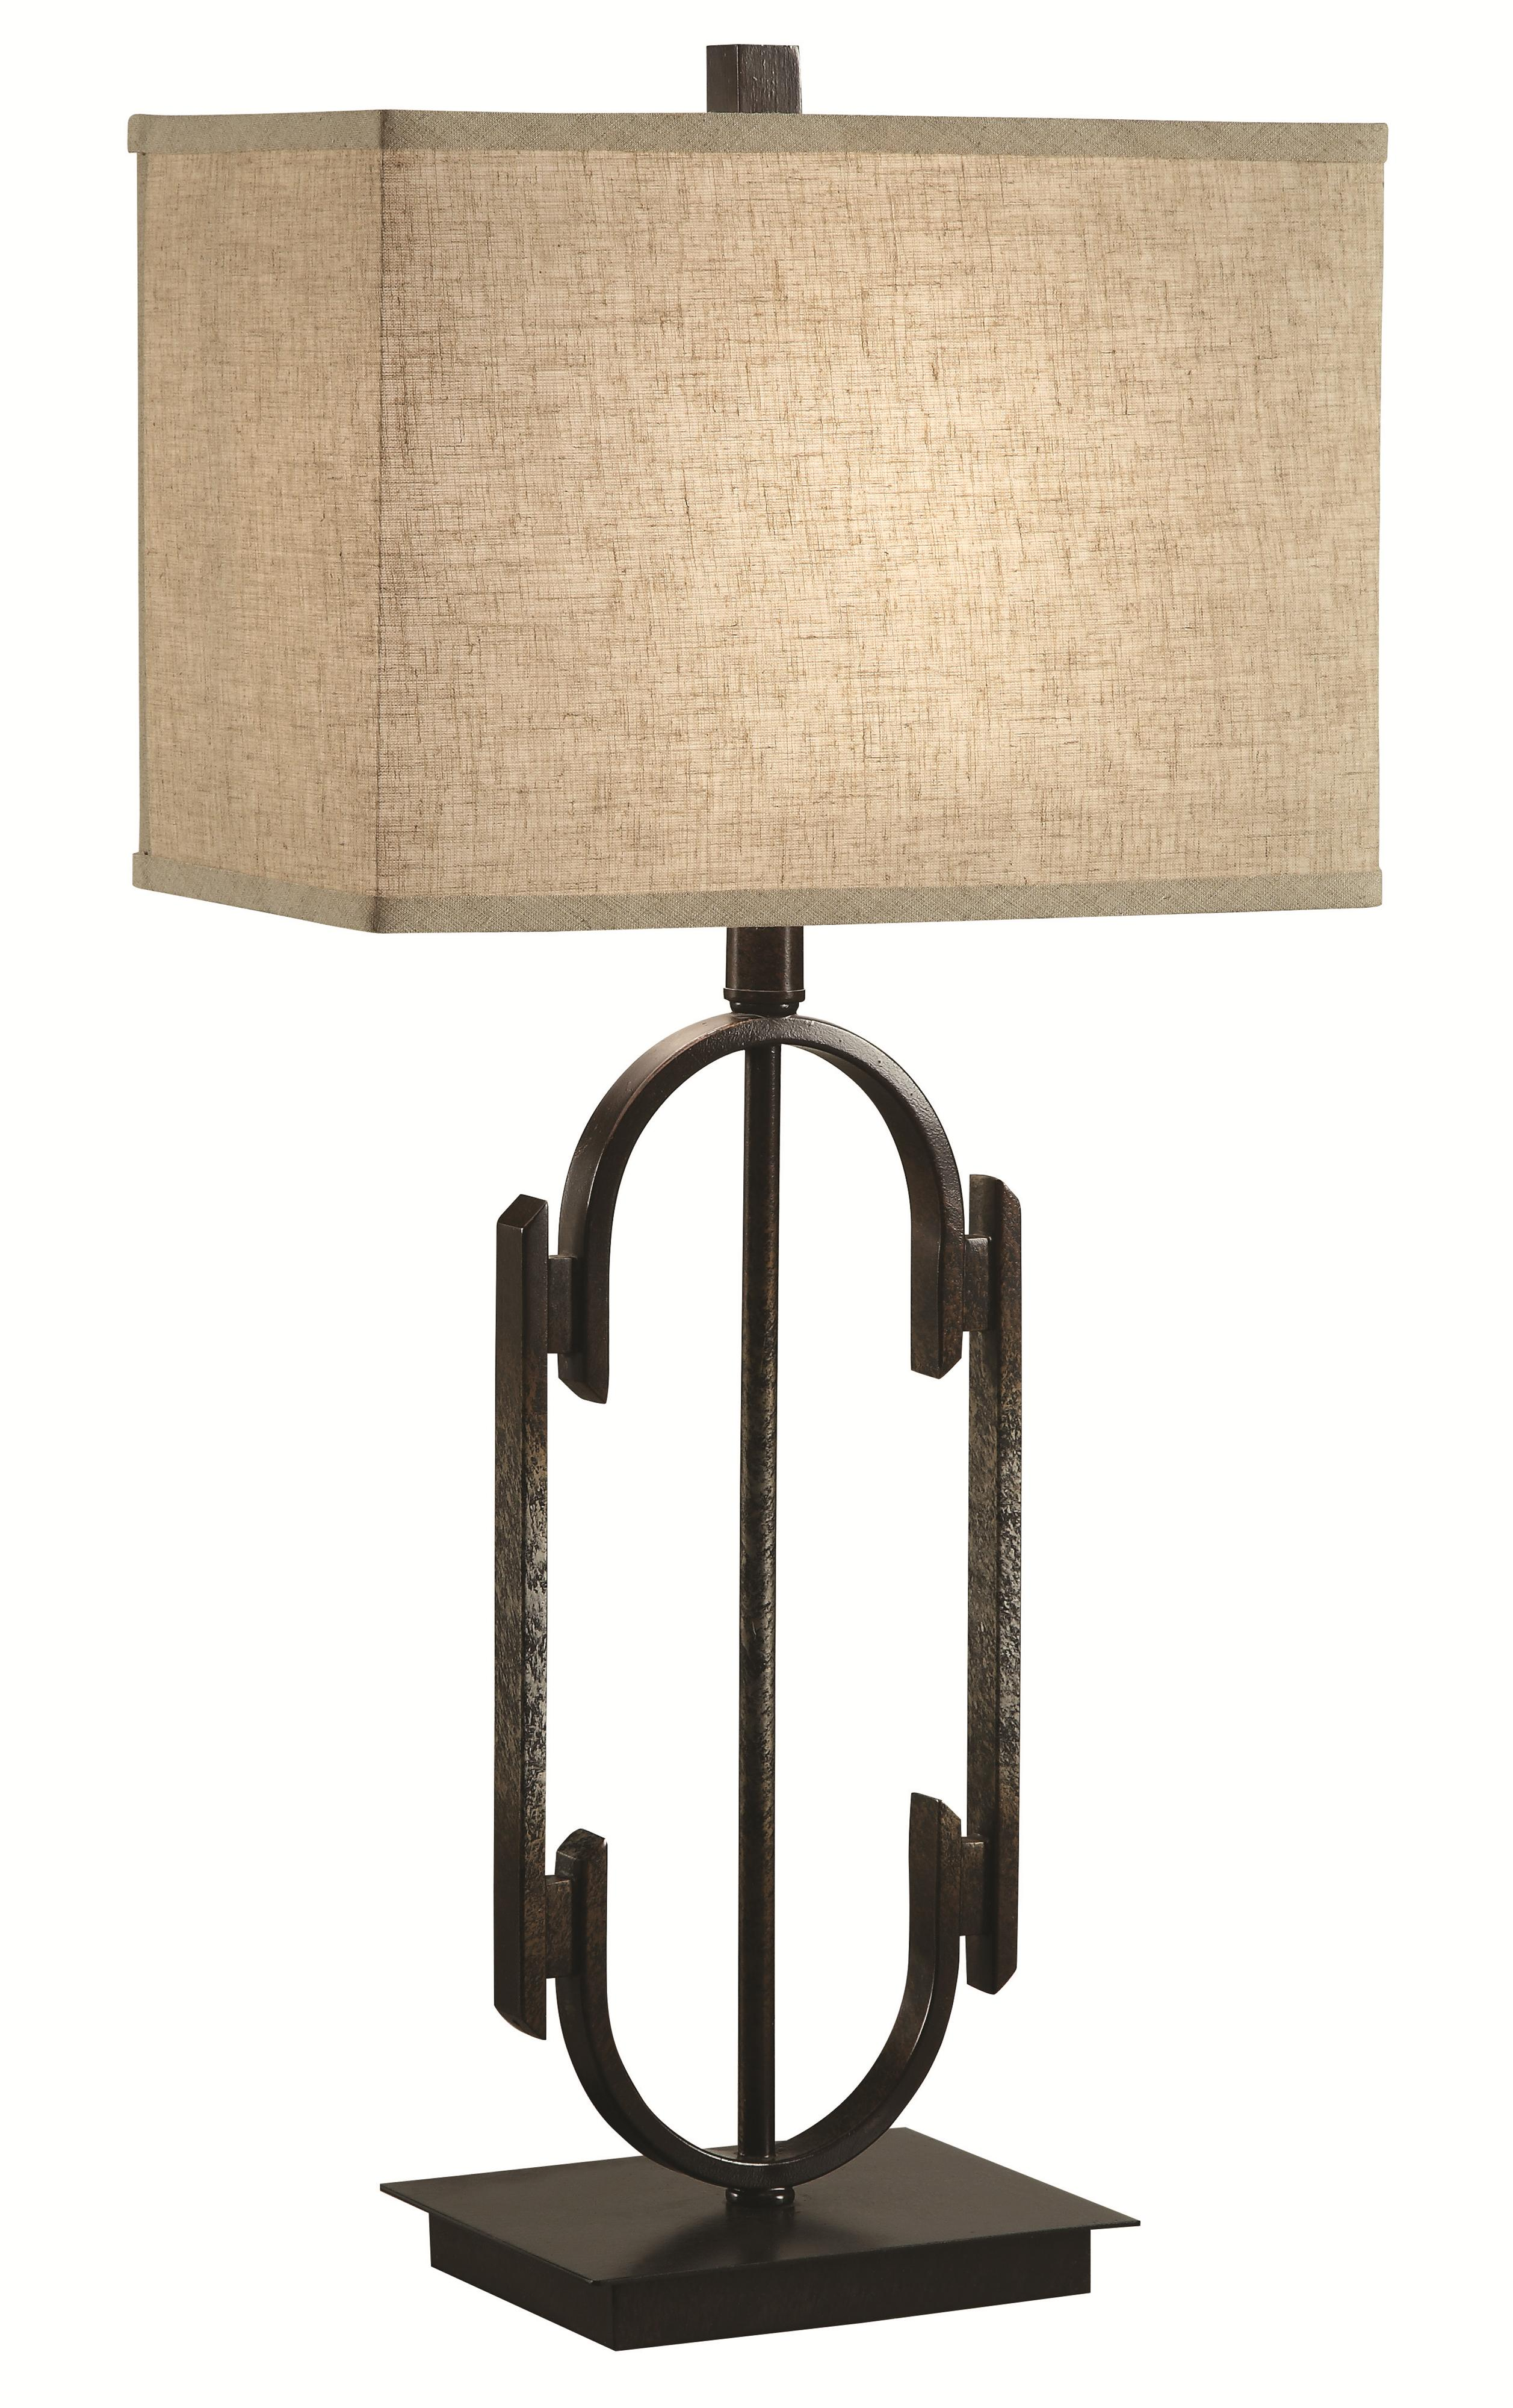 Coaster Table Lamps Table Lamp - Item Number: 901534